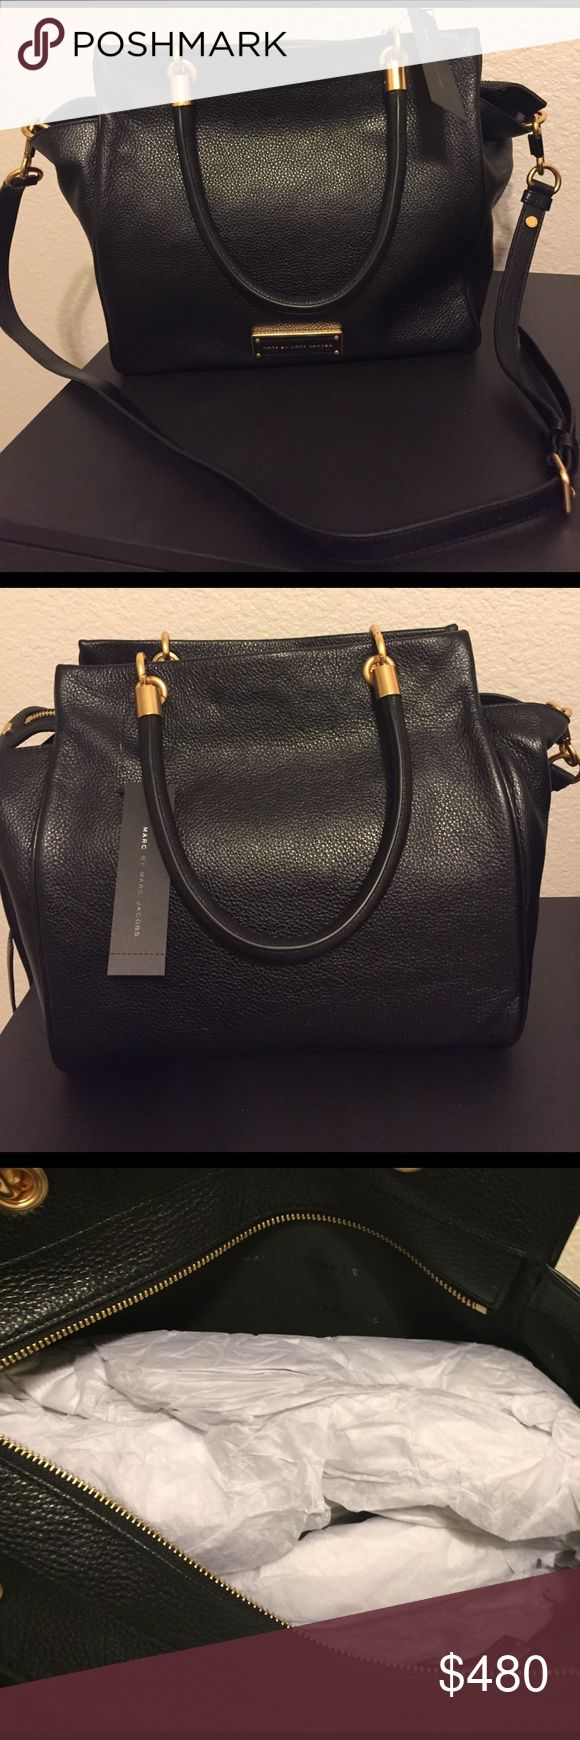 BRAND NEW!! Marc by Marc Jacobs handbag in black! BRAND NEW! MARC BY MARC JACOBS Large size handbag! Marc by Marc Jacobs Bags Shoulder Bags